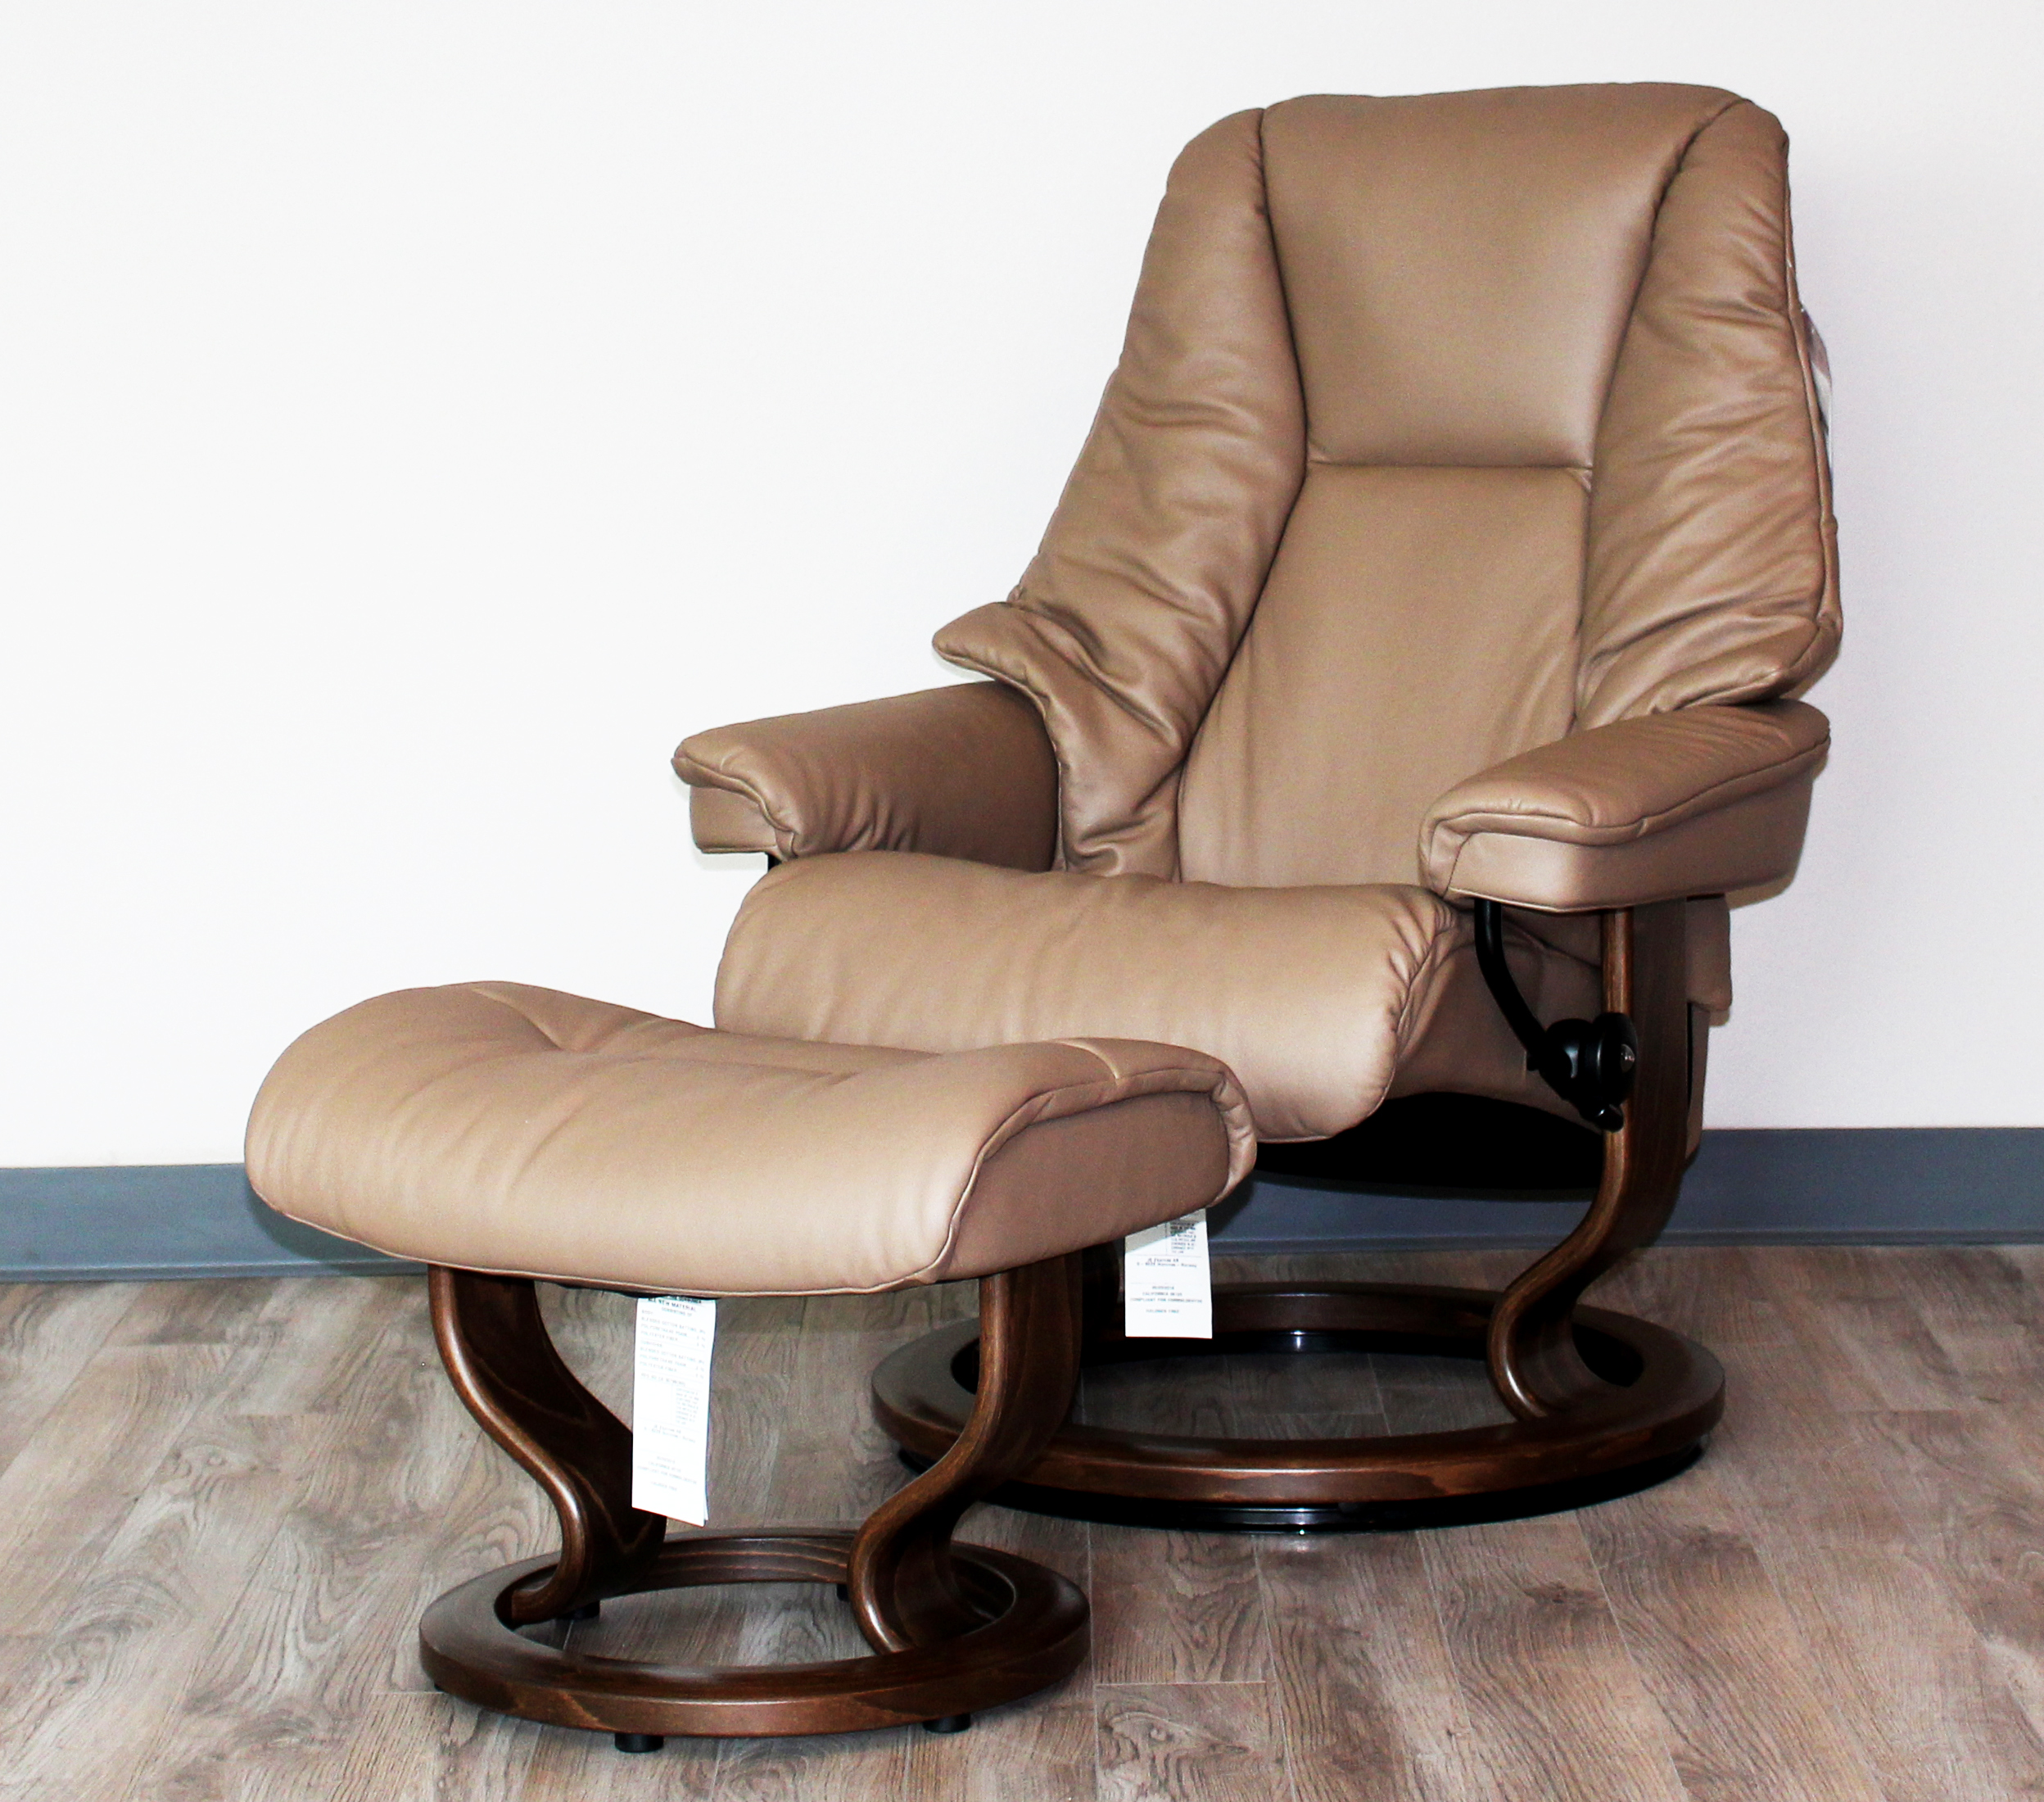 Stressless Live Medium Recliner Chair and Ottoman by Ekornes & Ekornes Stressless Live Recliner Chair Lounger and Ottoman ... islam-shia.org